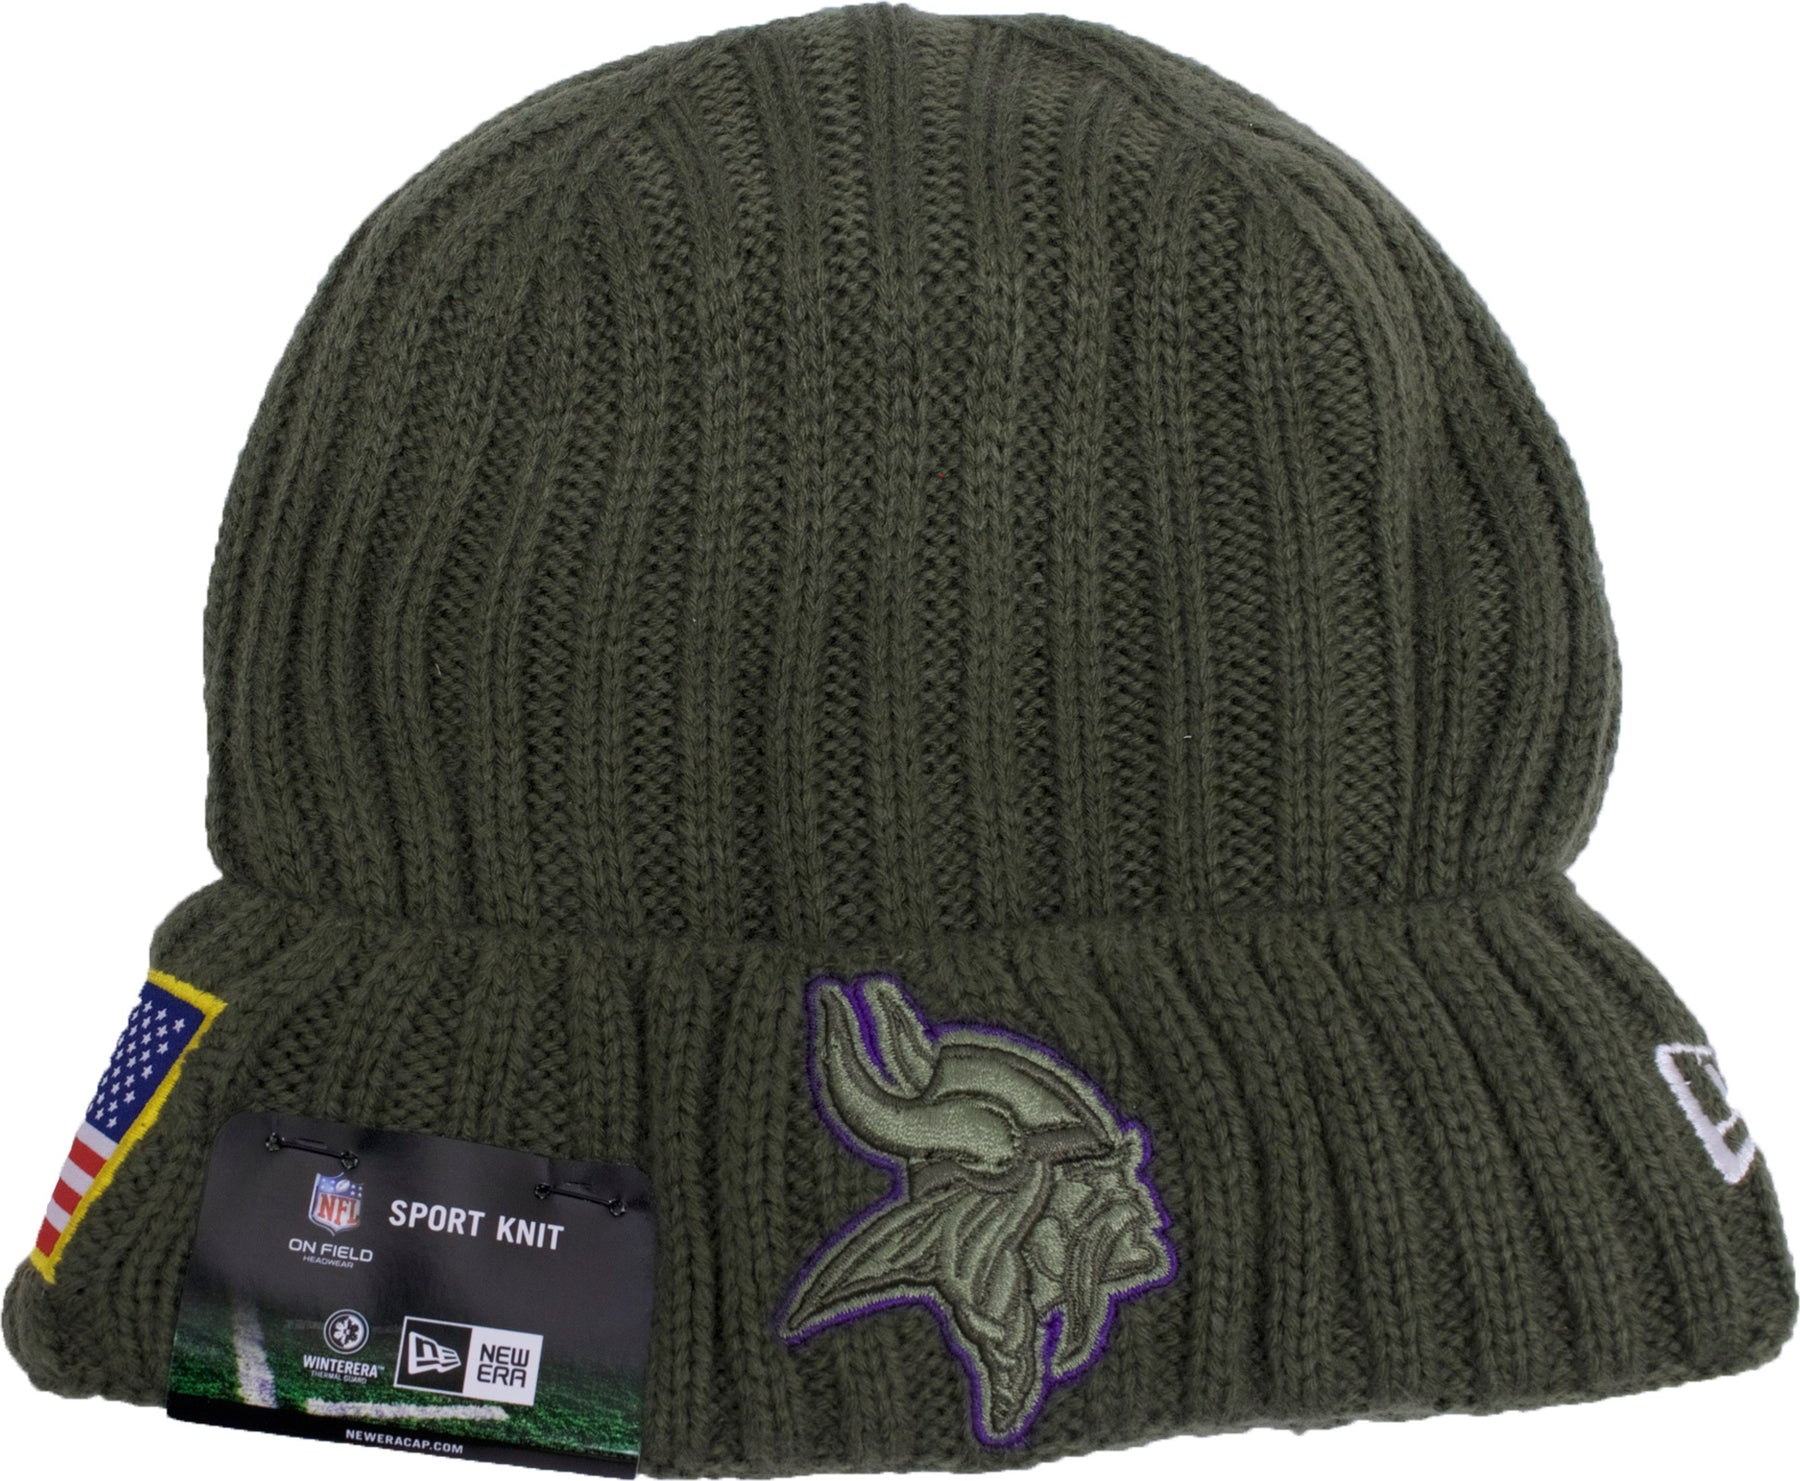 cae34abb5 ... top quality the minnesota vikings 2017 salute service beanie is solid  green d86c7 2060b